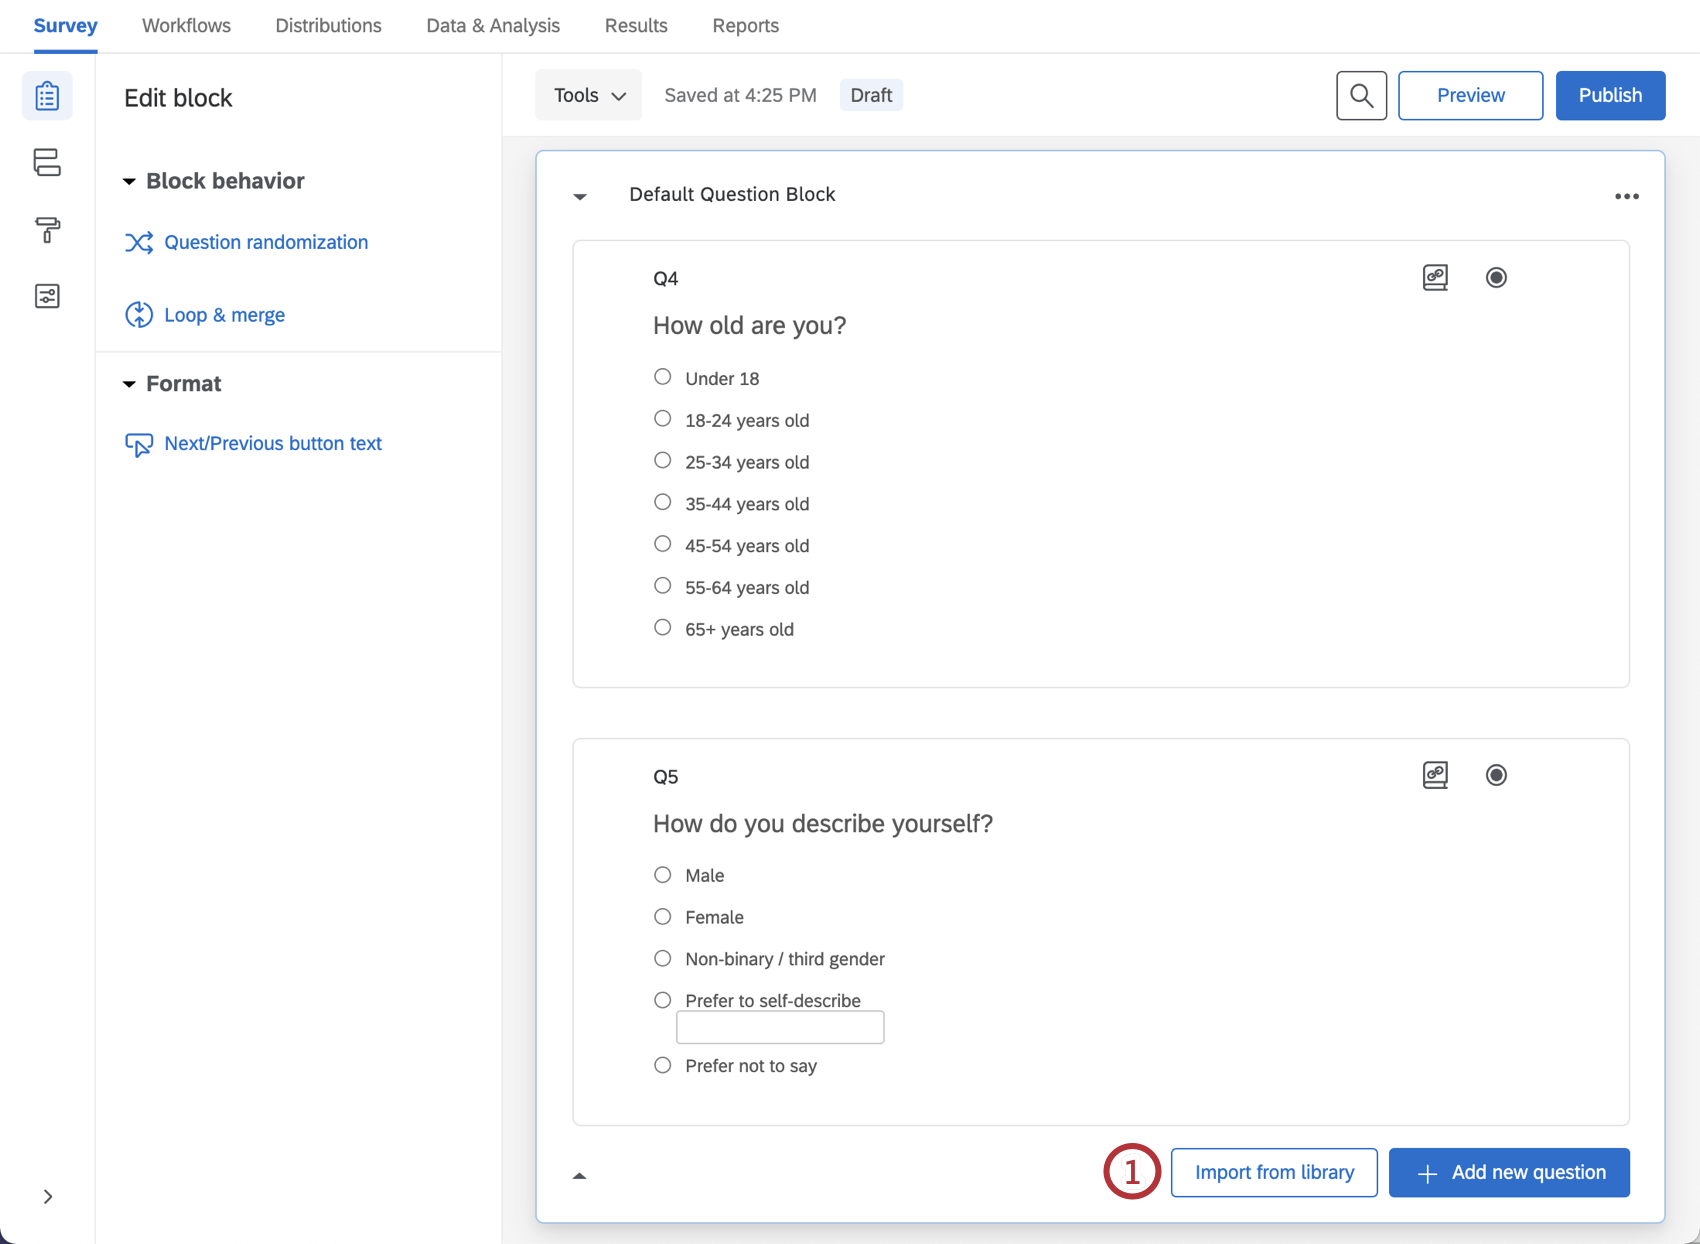 Import from library option within survey builder